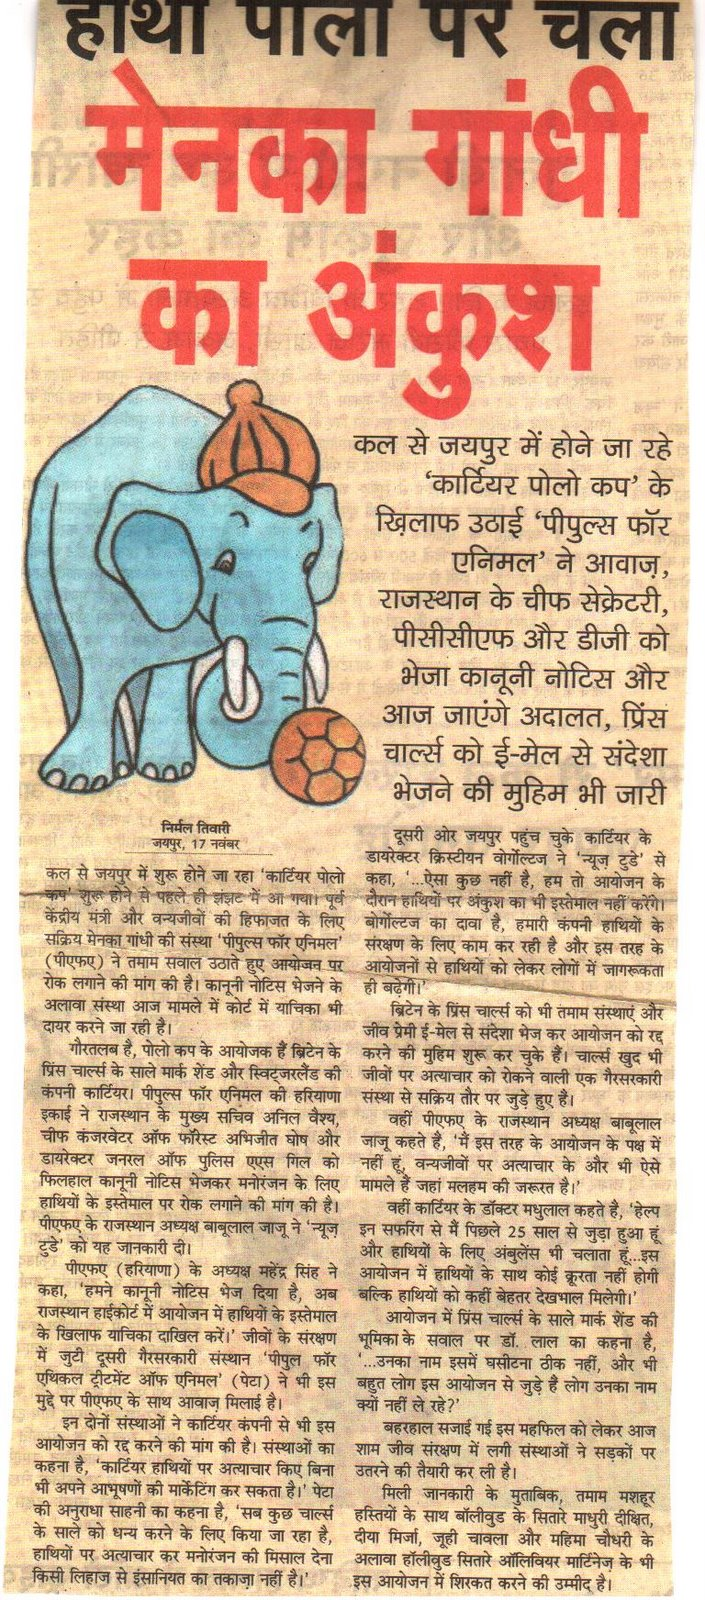 Naresh Kadyan opposed Elephant polo in India